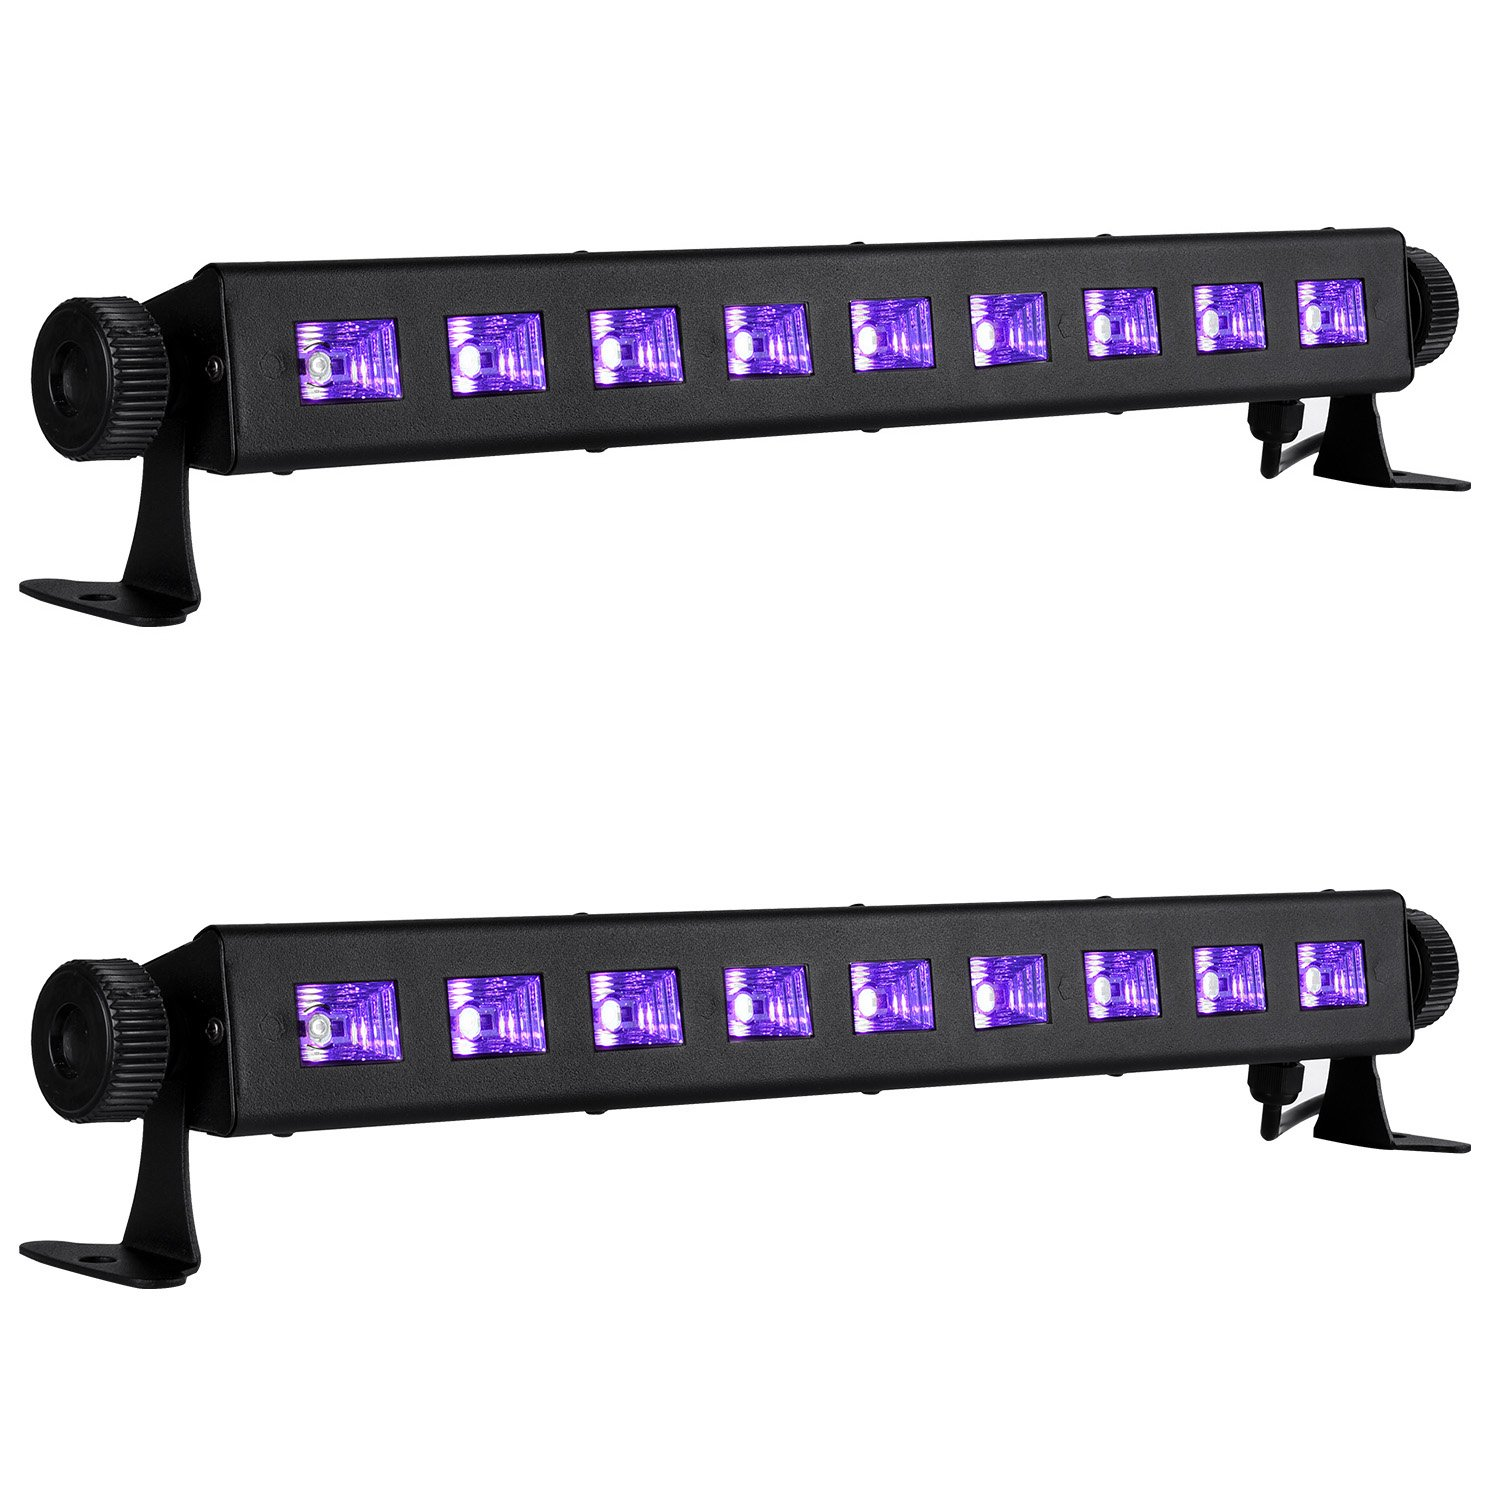 Viugreum 27W UV LED Blacklight LED Bar Black Lights Fixture for Neon Clow Parties Fluorescent Tapestry Poster Paint Lighting DJ Stage - Black (27W-2 PACK) (Ship from USA,delivered it in 3-7 days)